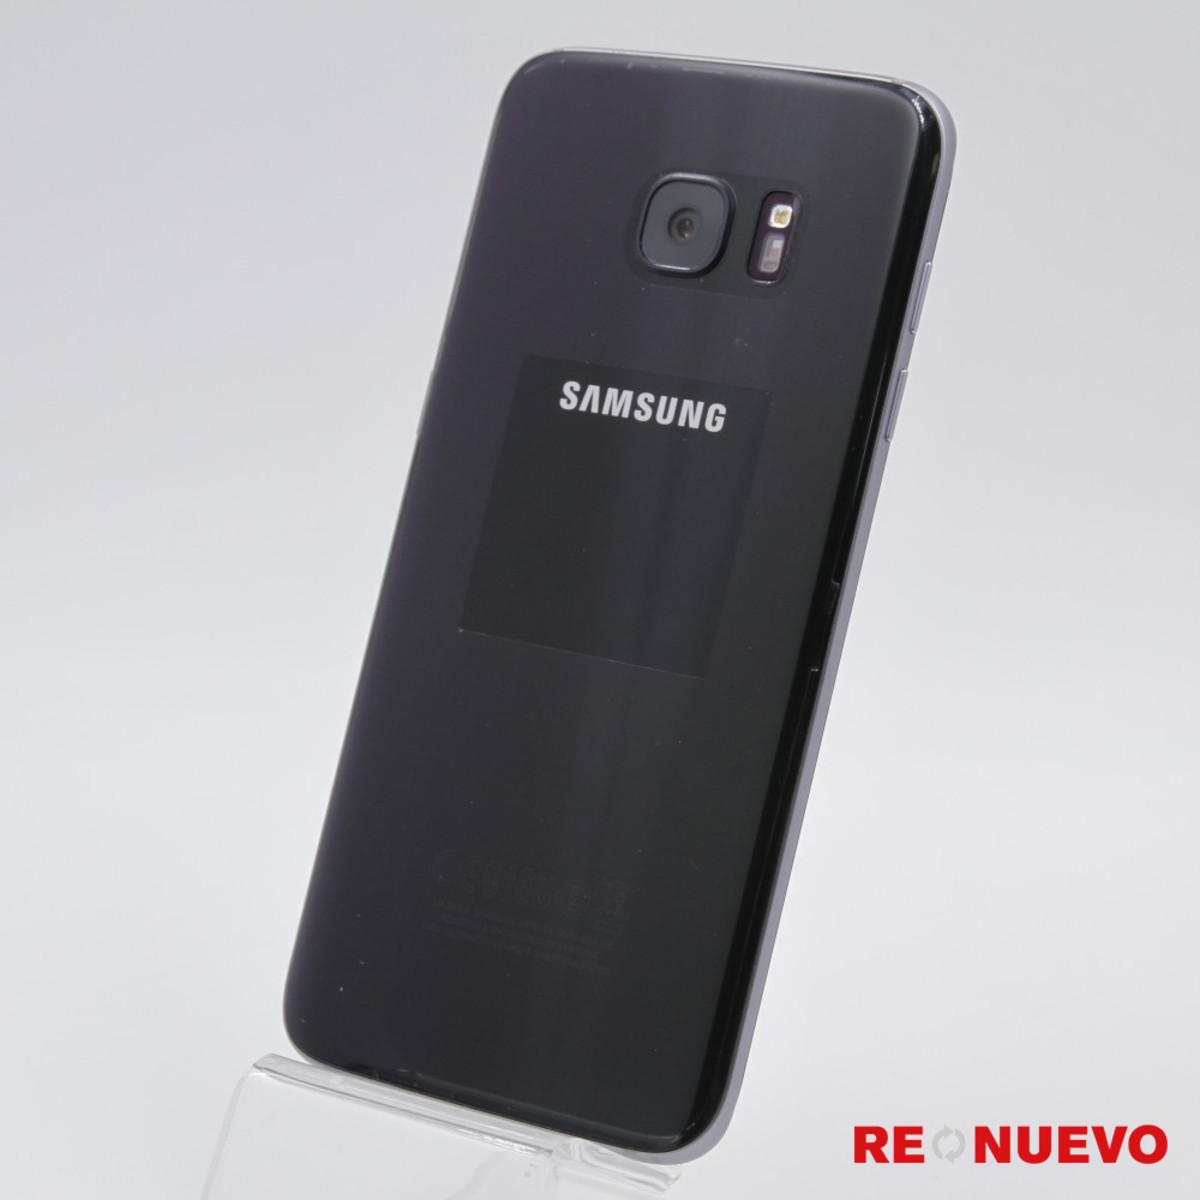 Comprar Galaxy S7 Edge Lujo Prar Samsung Galaxy S7 Edge De 32gb Black Yx De Of Comprar Galaxy S7 Edge Perfecto Samsung Galaxy S7 Edge Celulares Costa Rica